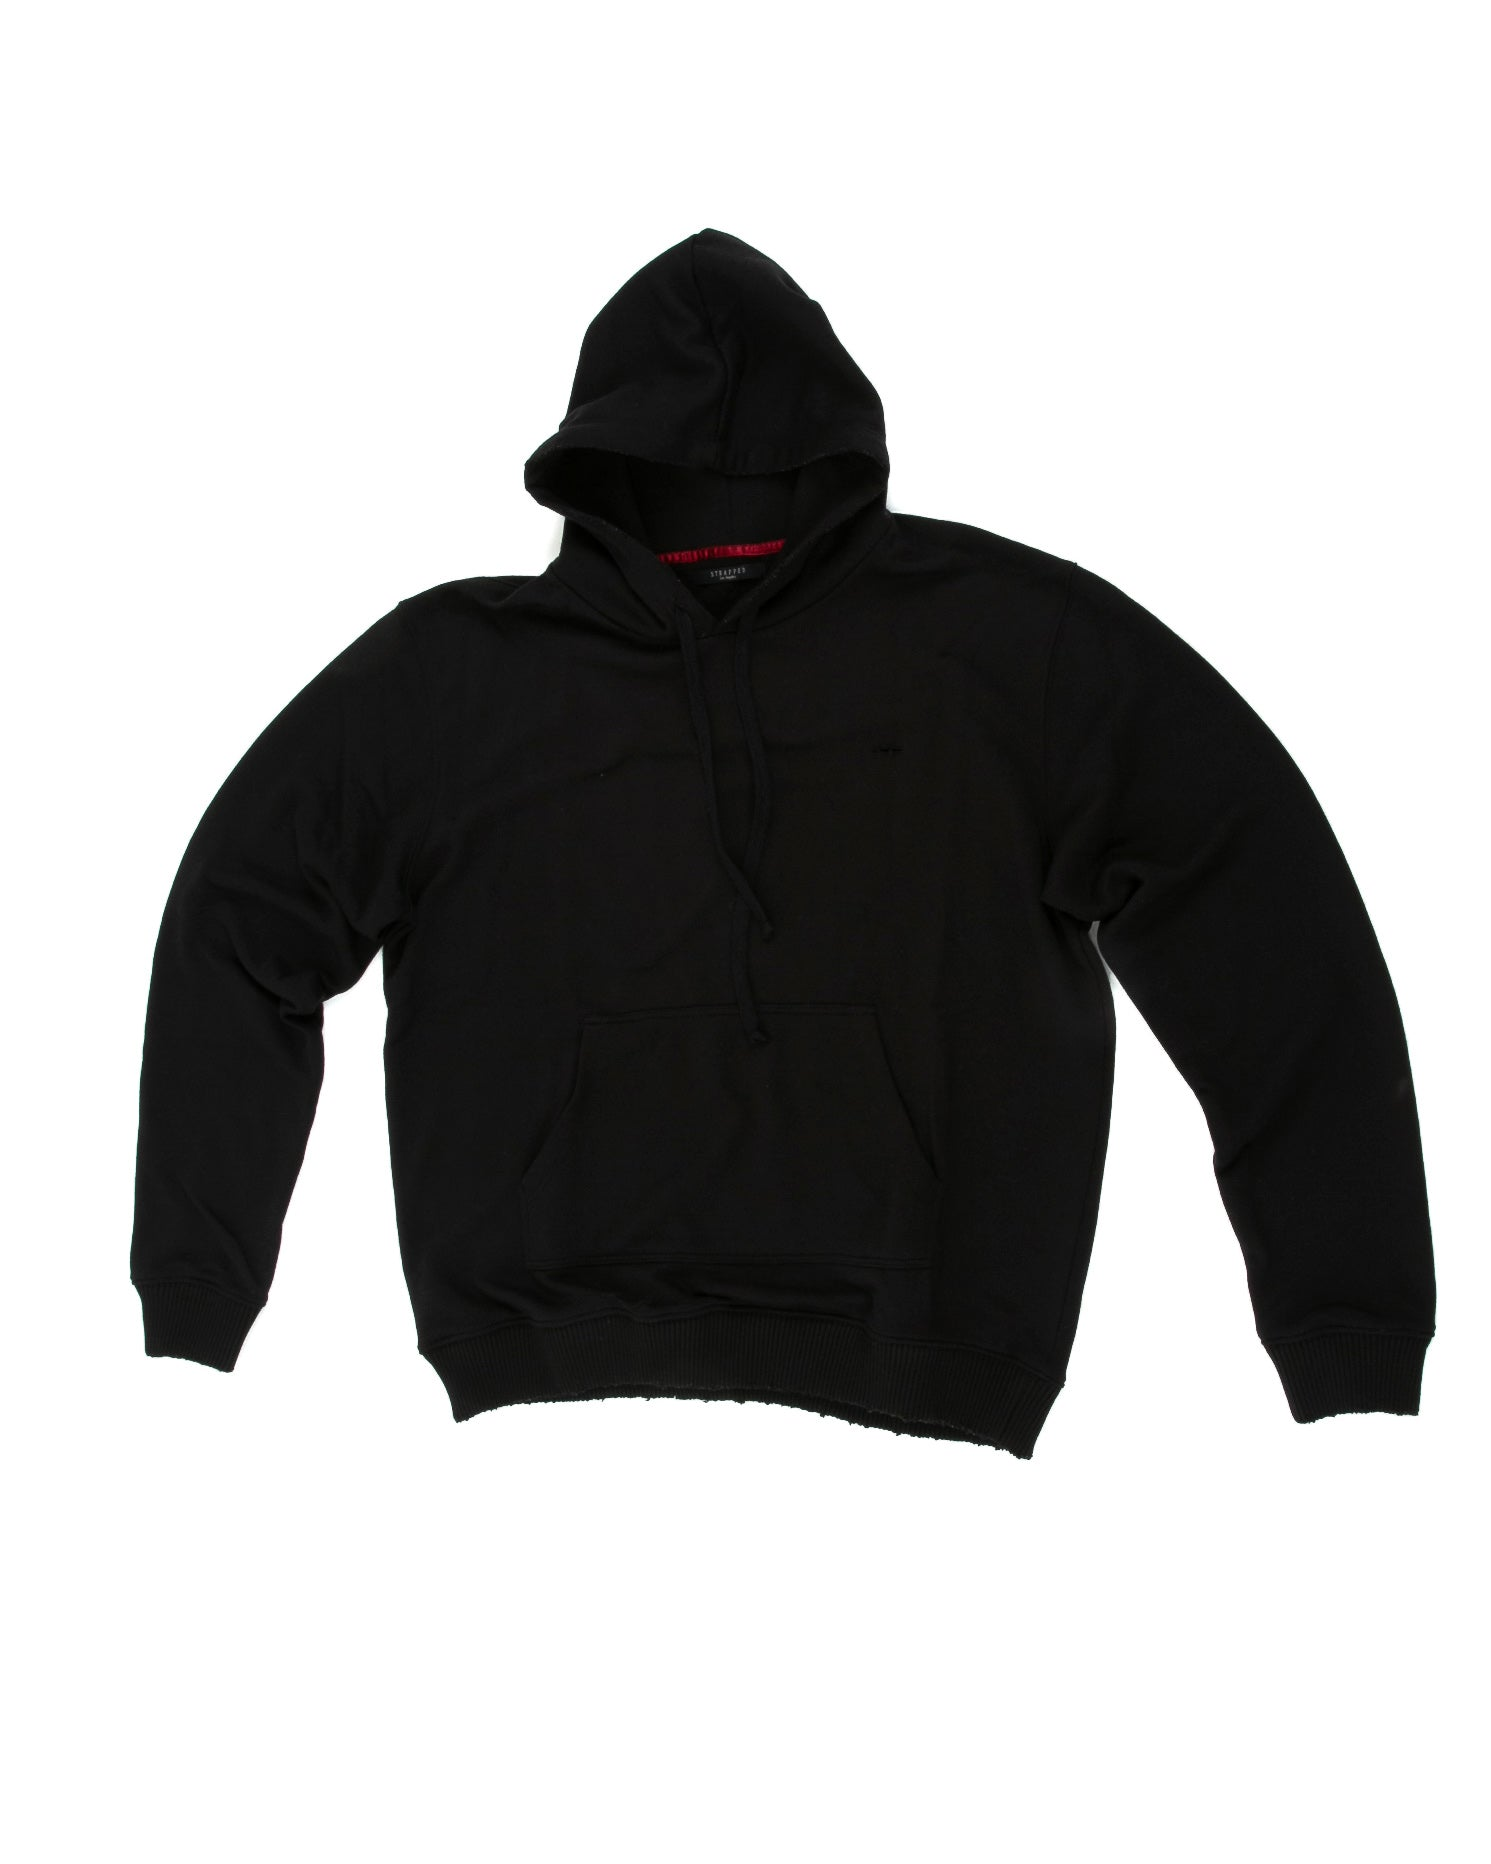 Weighted Hoodie in Black